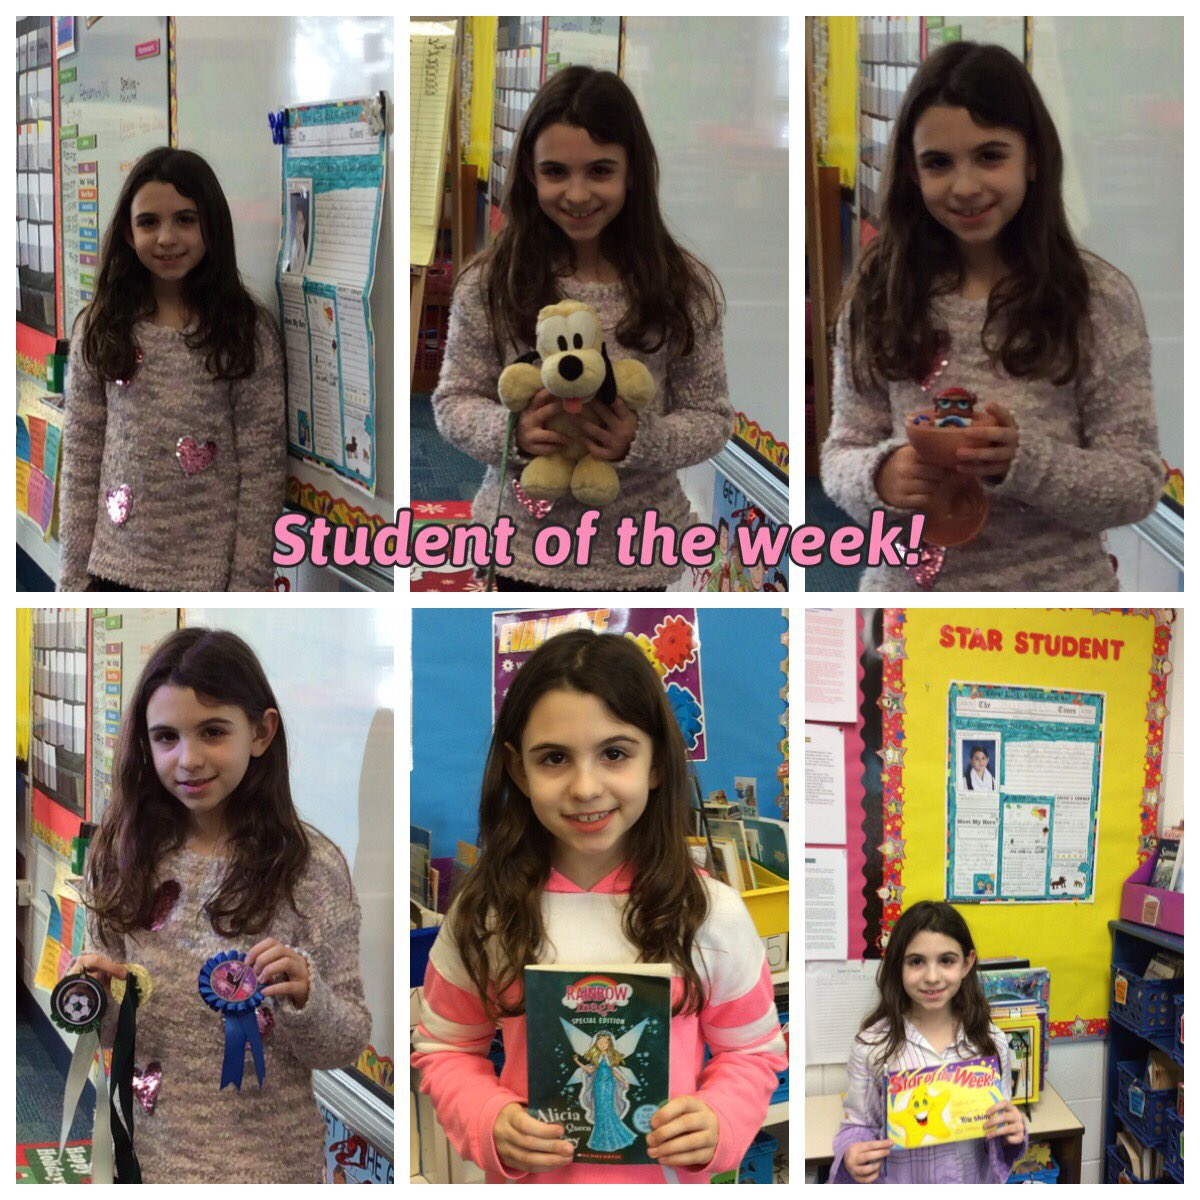 test Twitter Media - Student of the week! #d30learns https://t.co/Ouqq1OrLCH